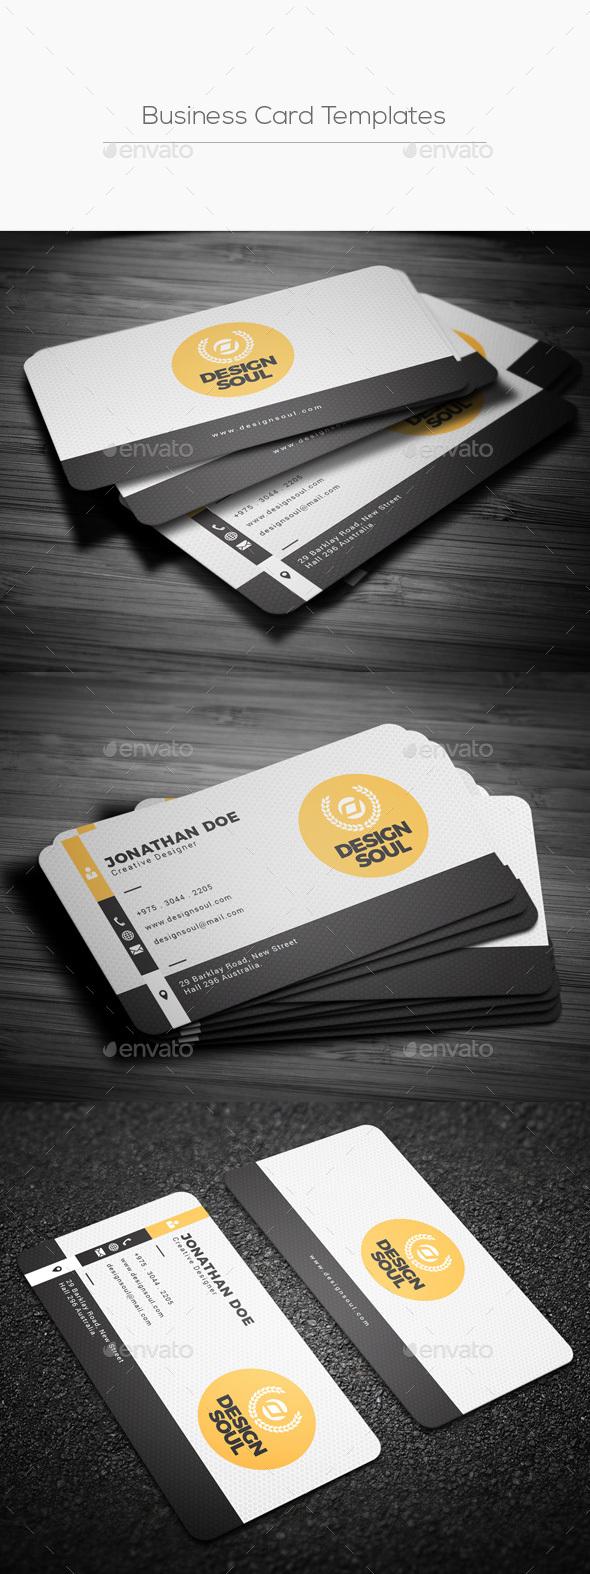 Business card templates designs from graphicriver accmission Image collections